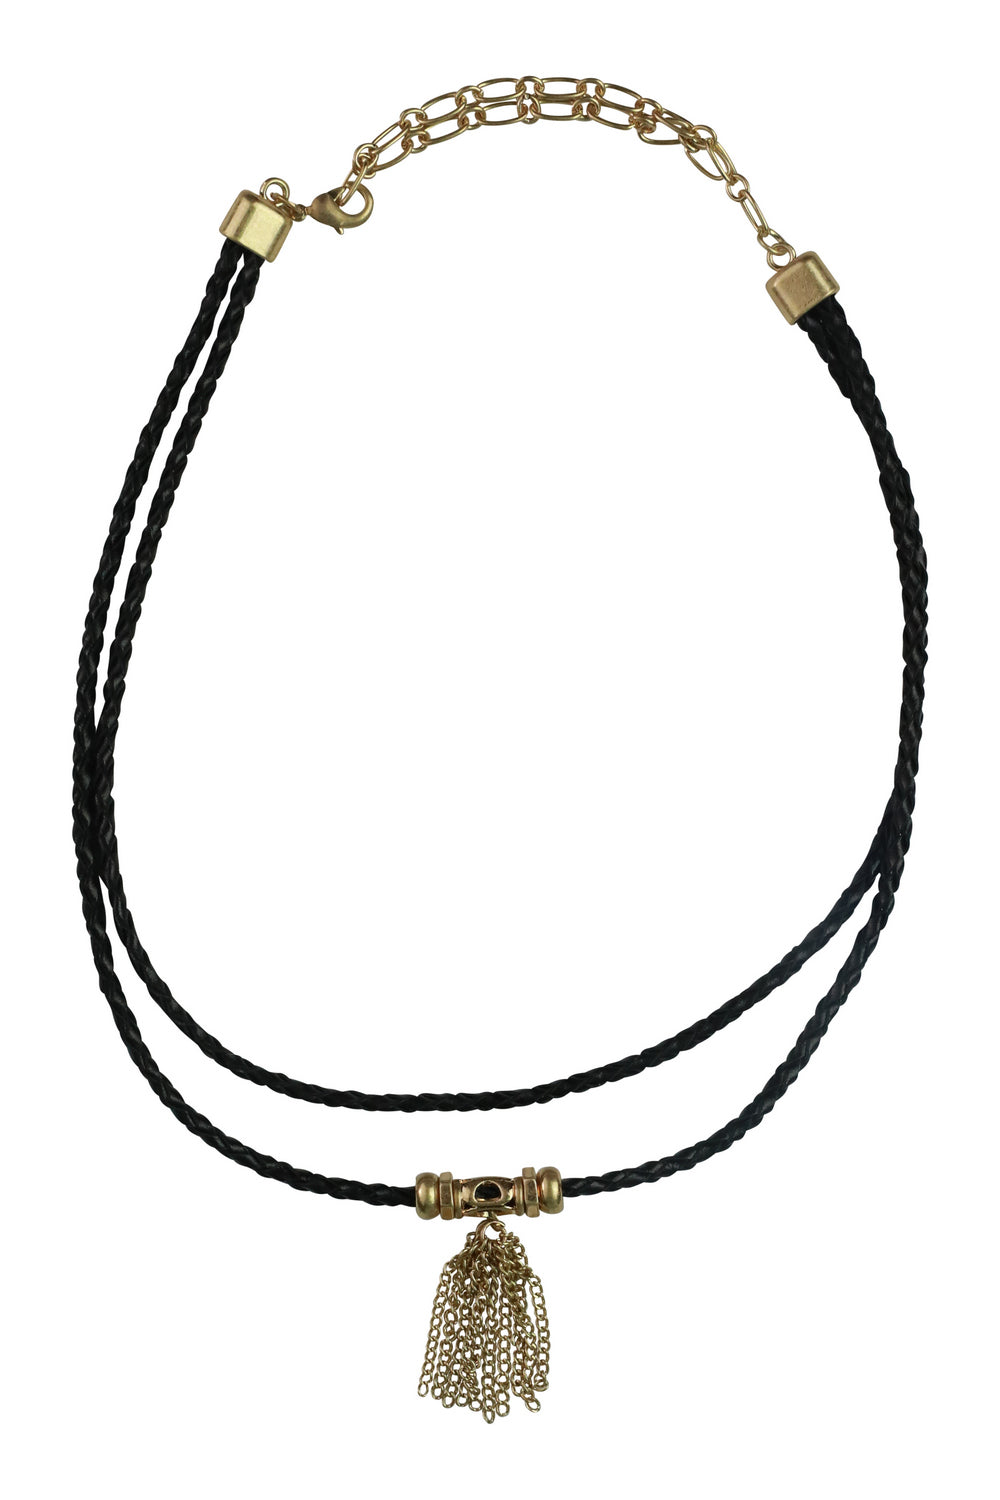 Faux Leather Plait Necklace with Metal Tassle Detail - Black - Kenzie Tenzie